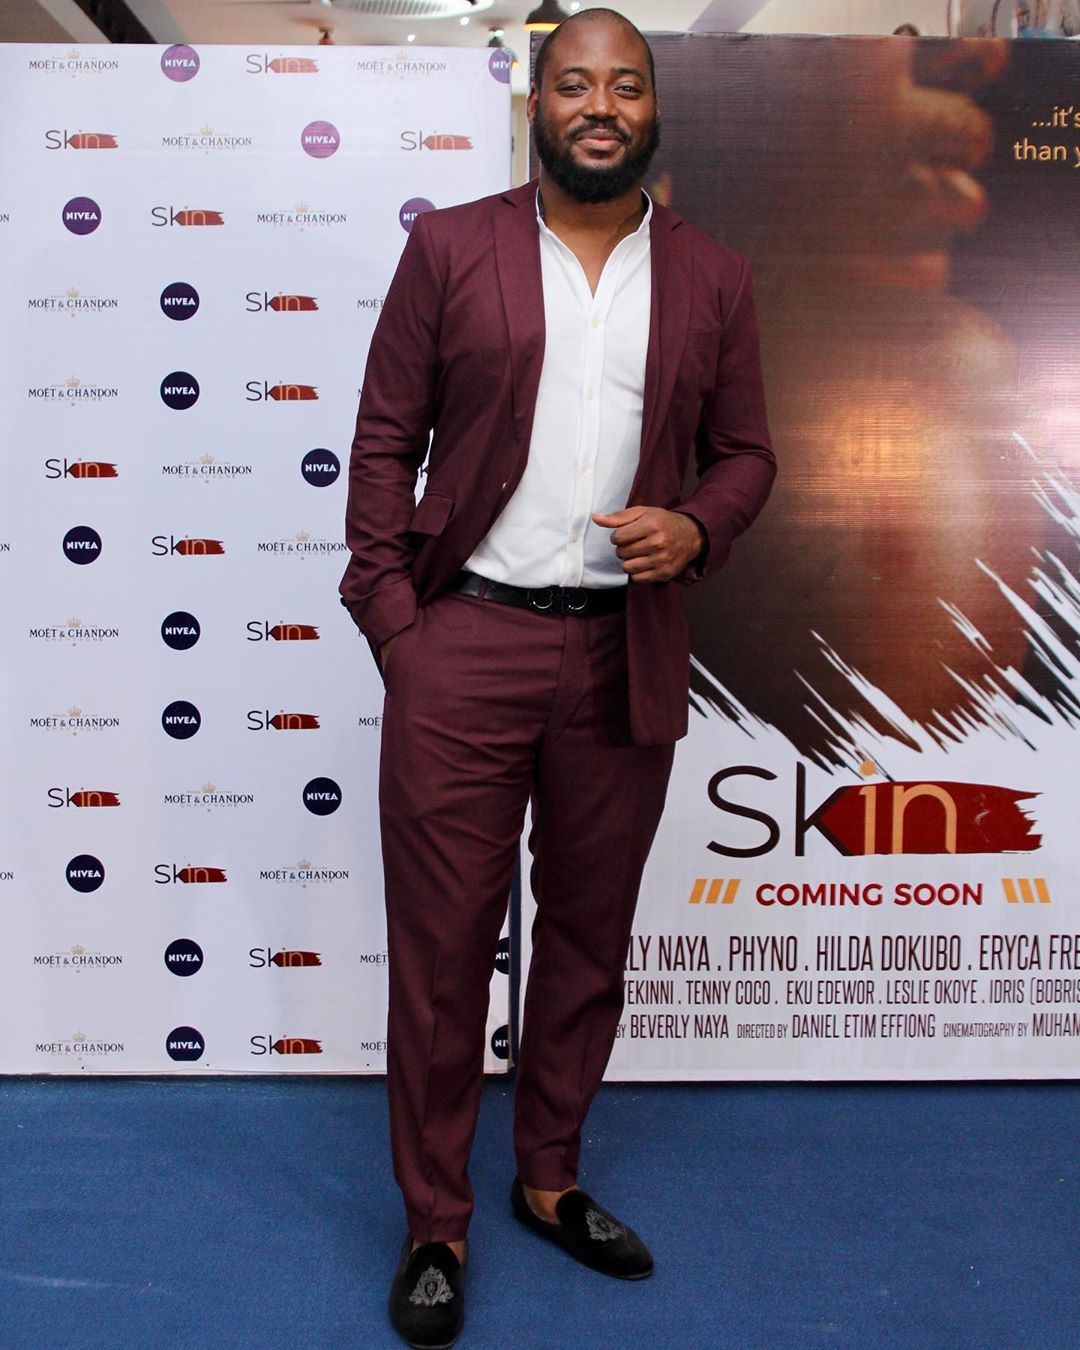 "17 - Omotola Jalade-Ekeinde, Mo Abudu, others spotted at the Premiere of Beverly Naya's Documentary ""Skin"""